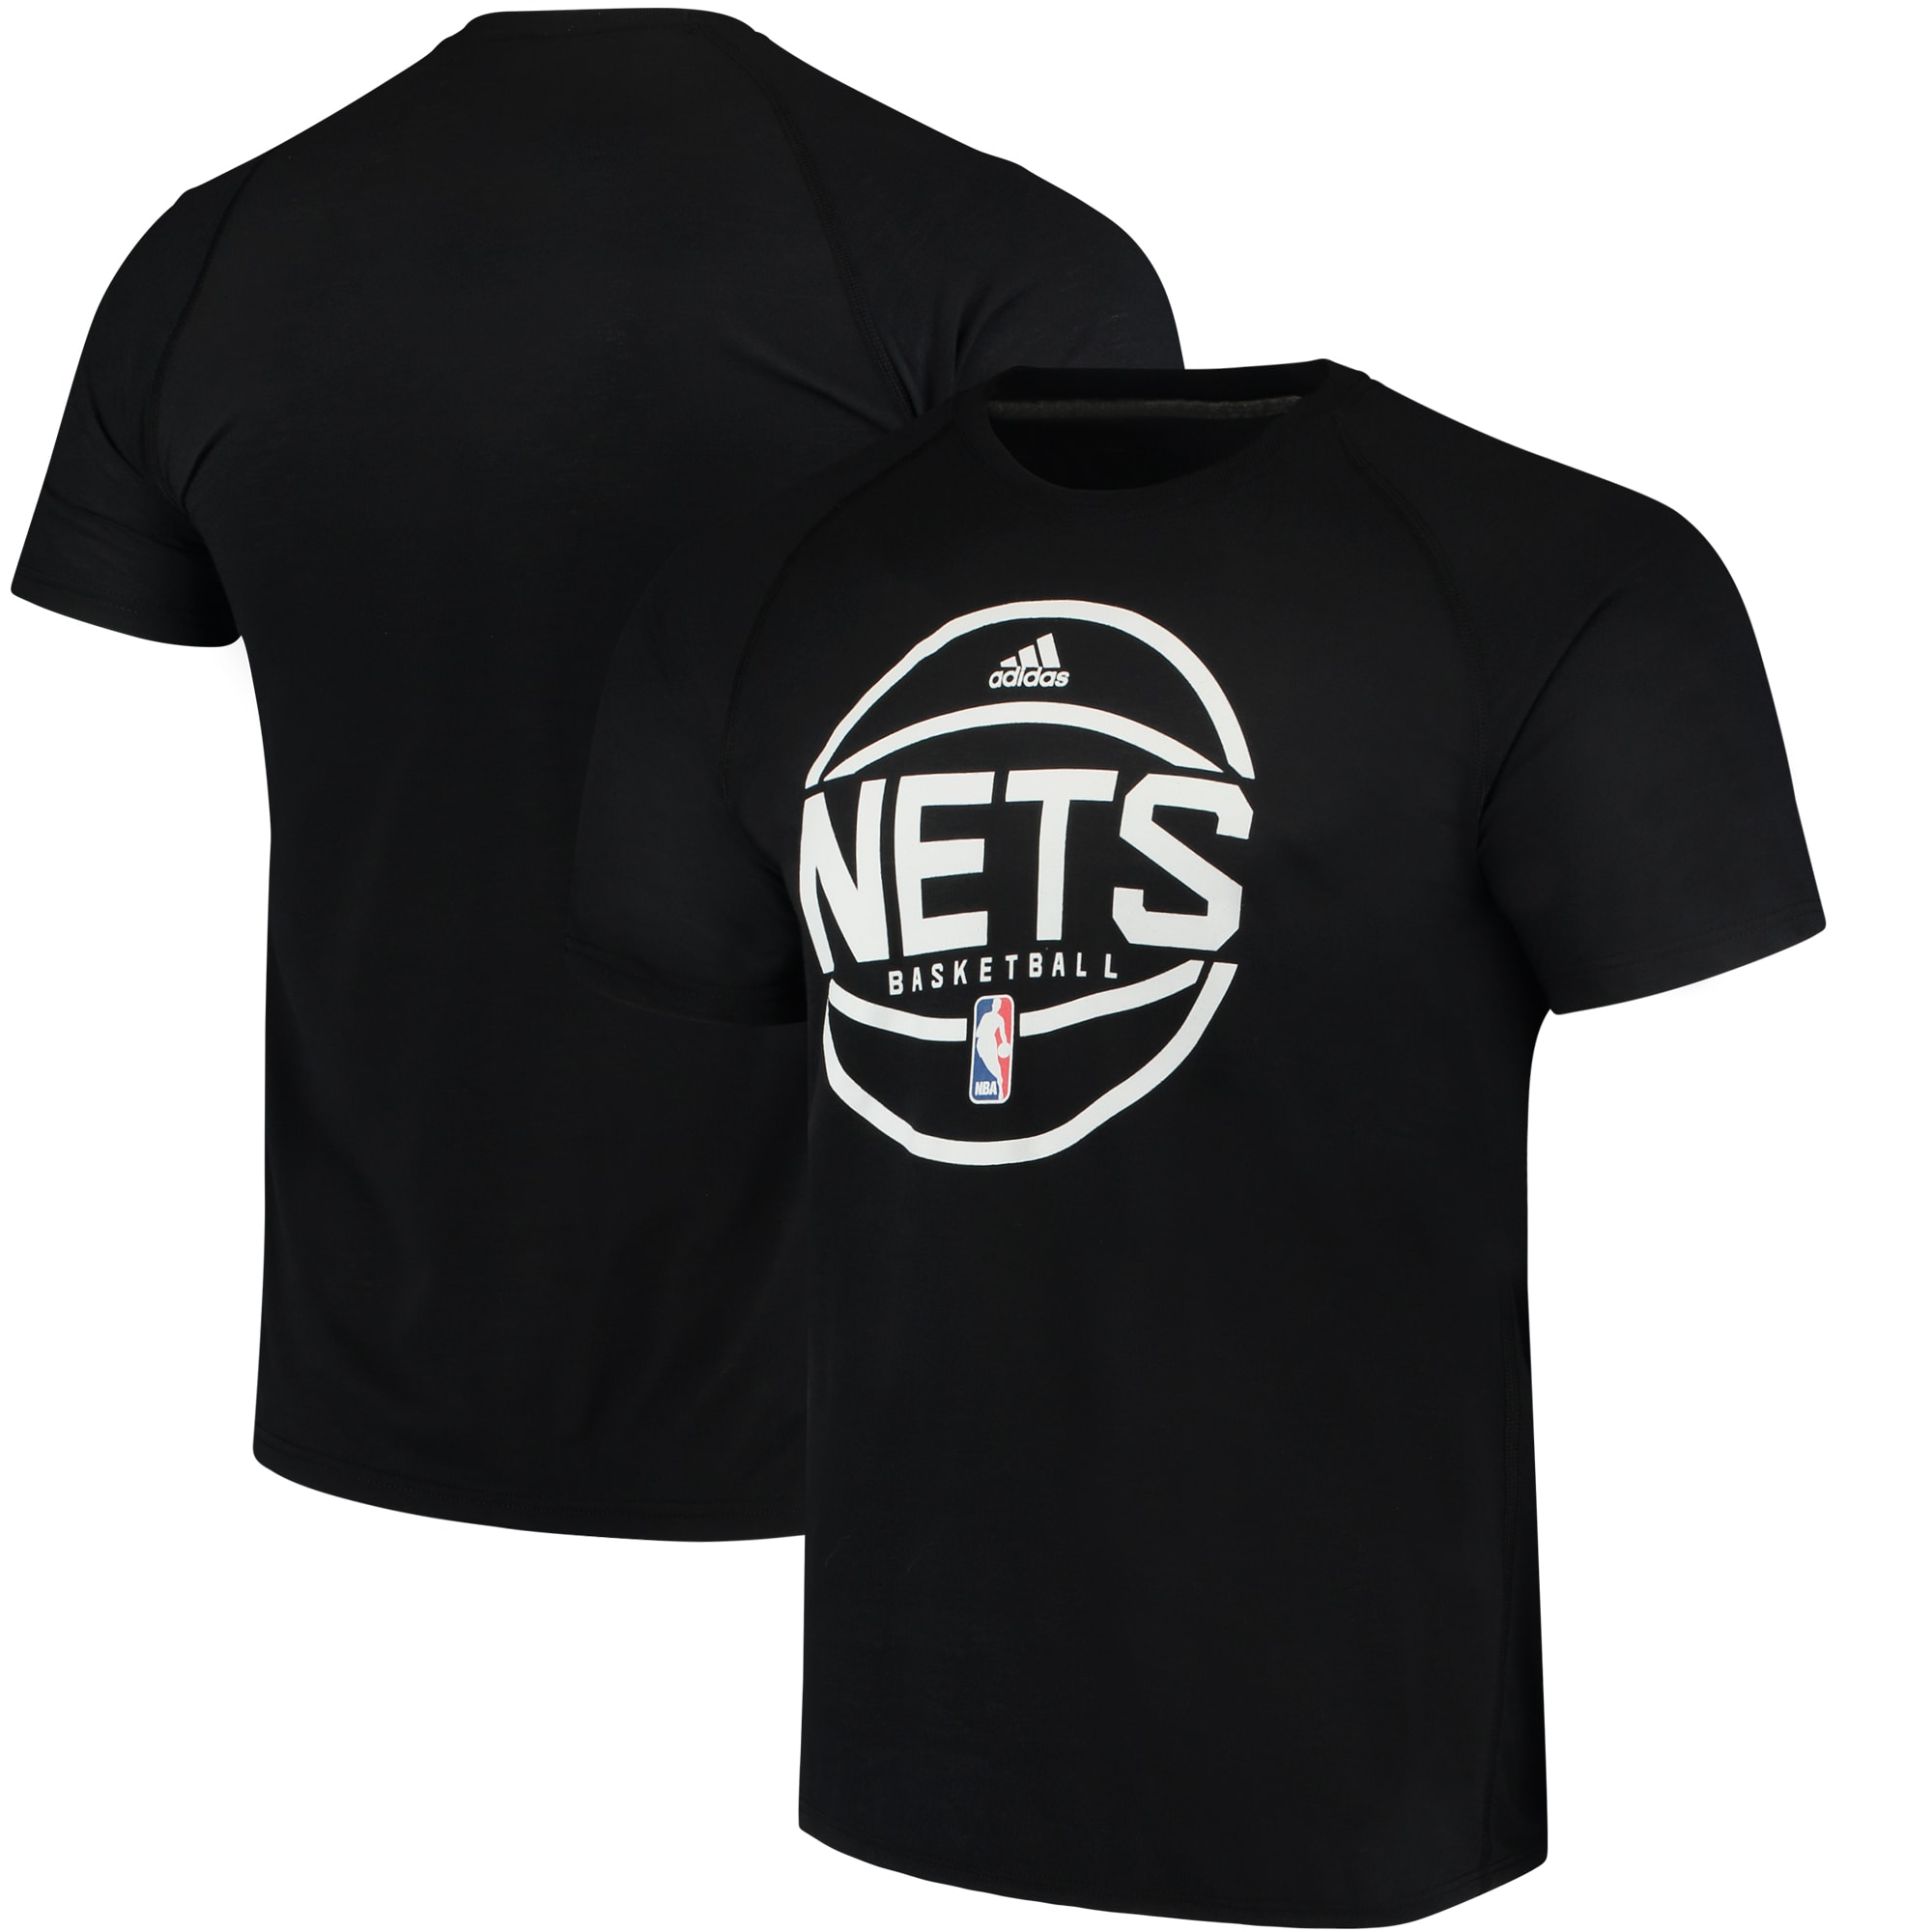 Brooklyn Nets adidas On-Court Ultimate climalite T-Shirt - Black